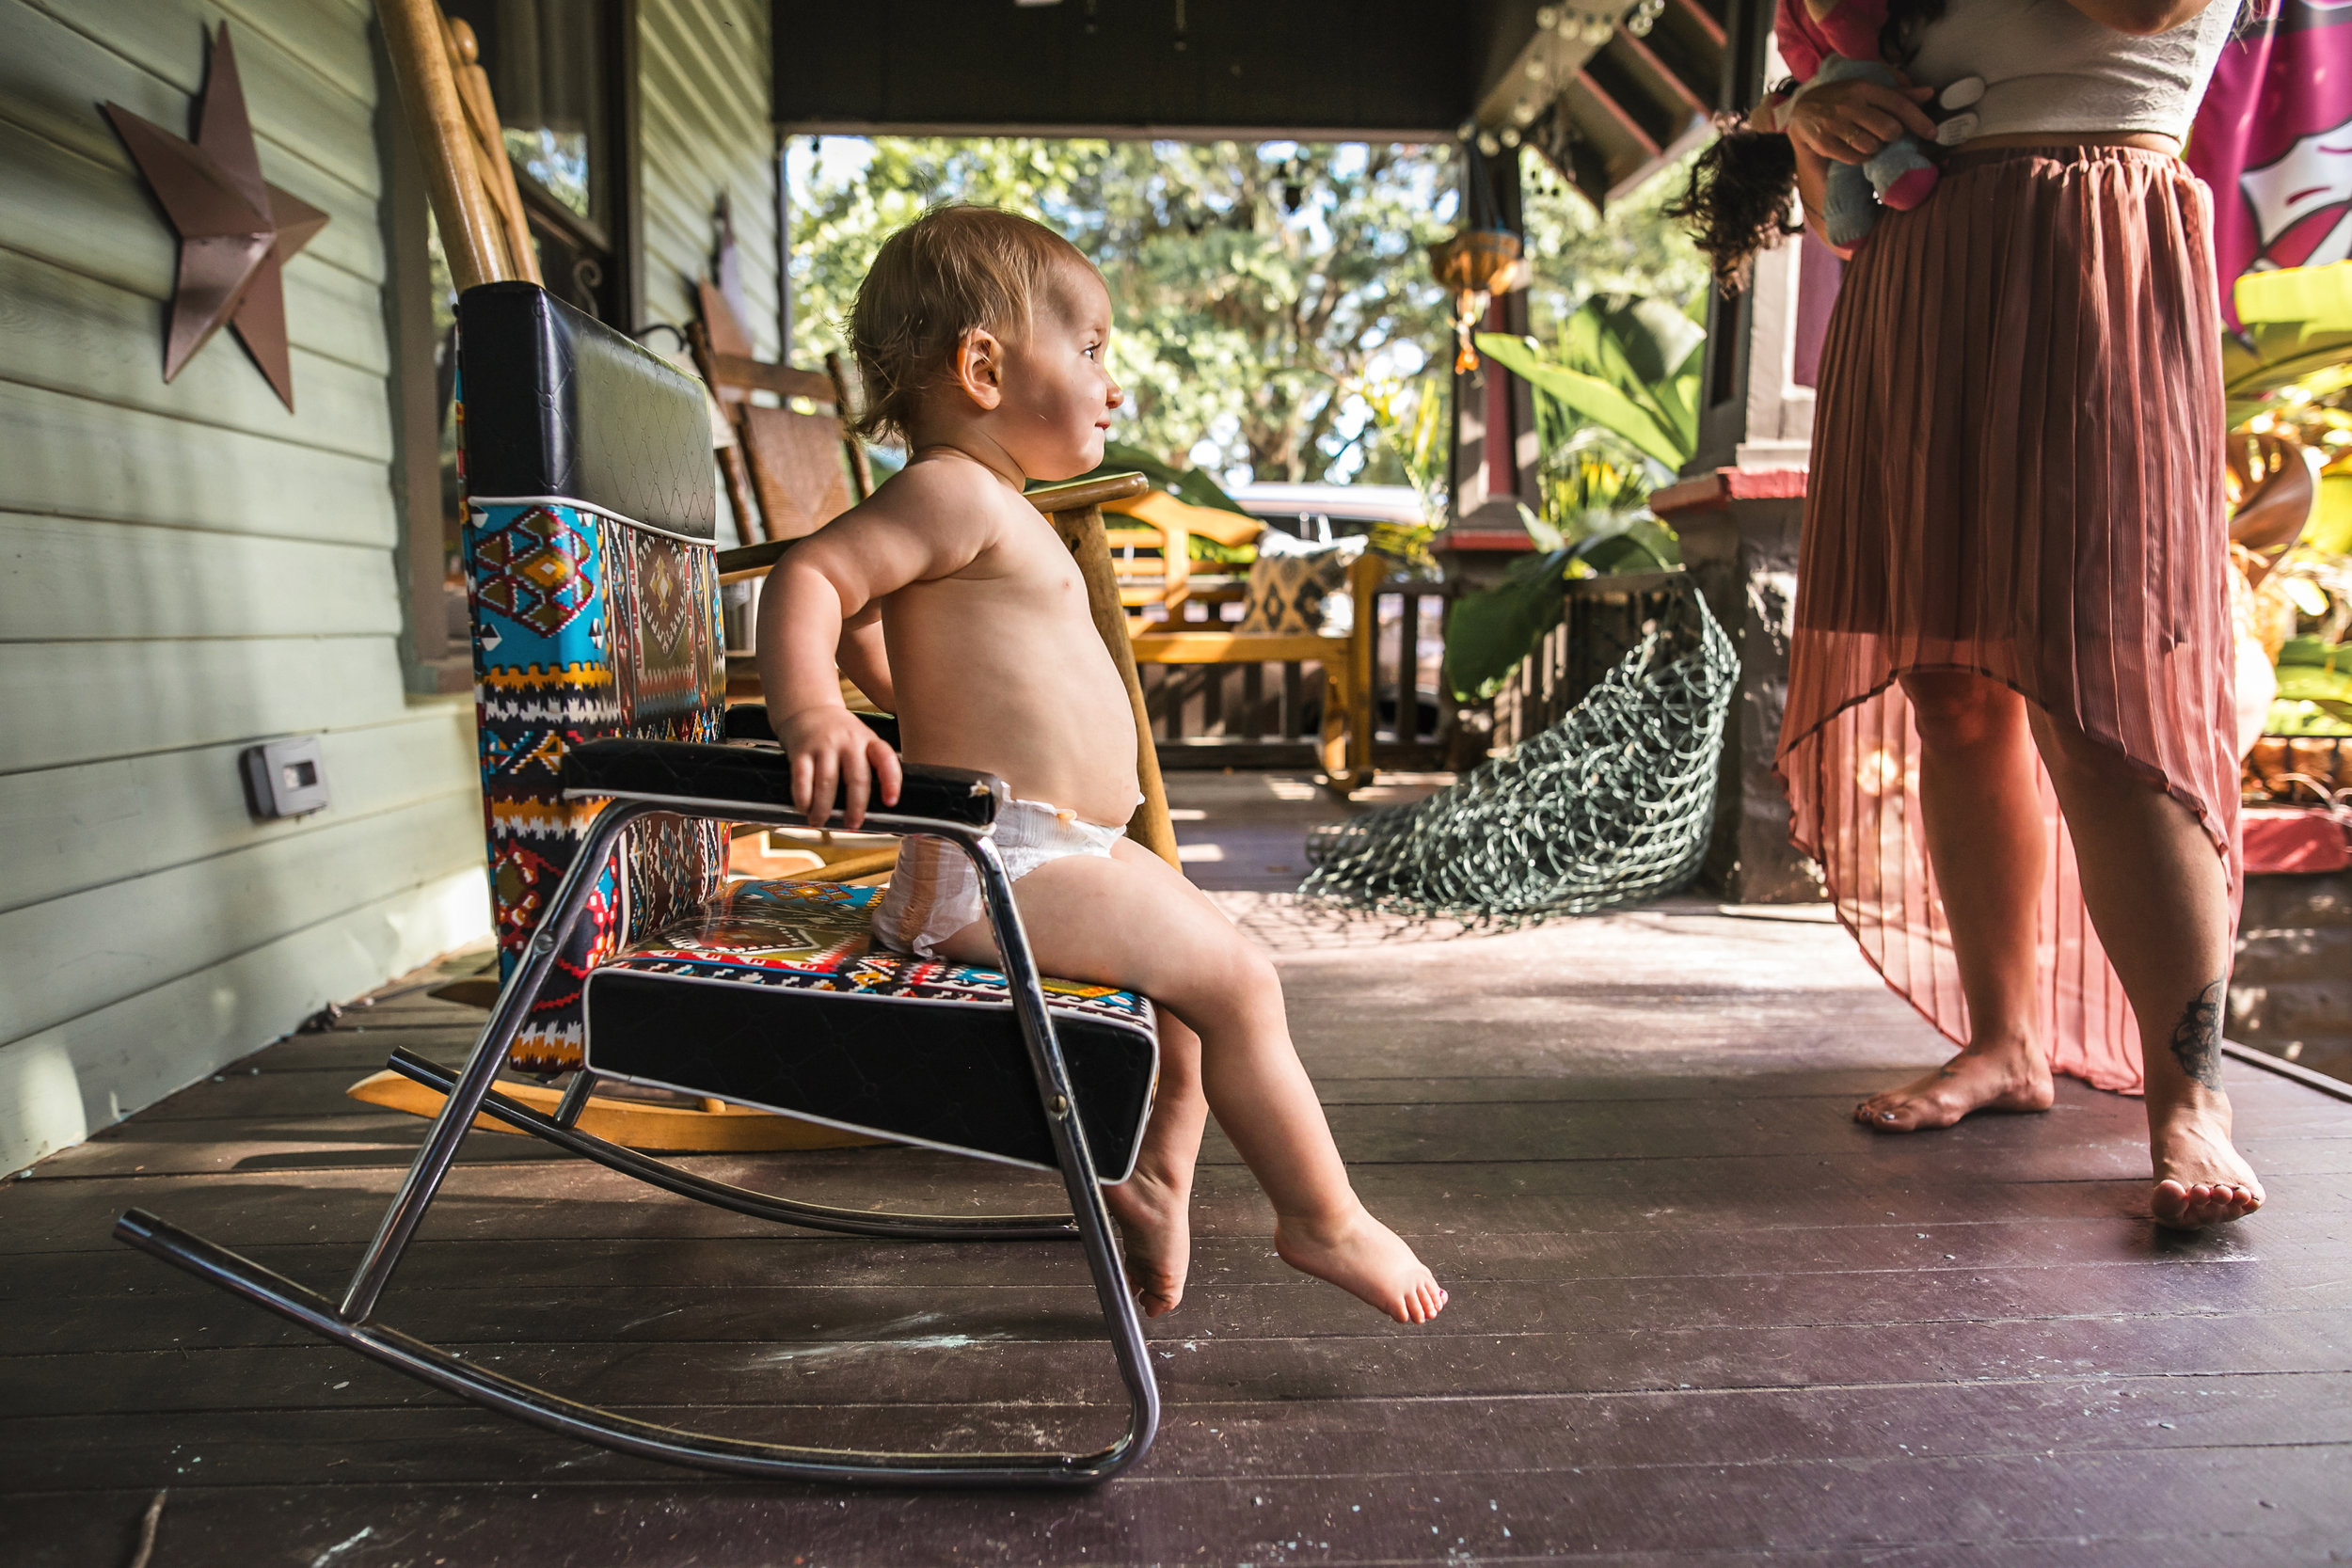 baby sits in rocking chair on front porch wearing a diaper 3-(ZF-0126-04493-1-034).jpg